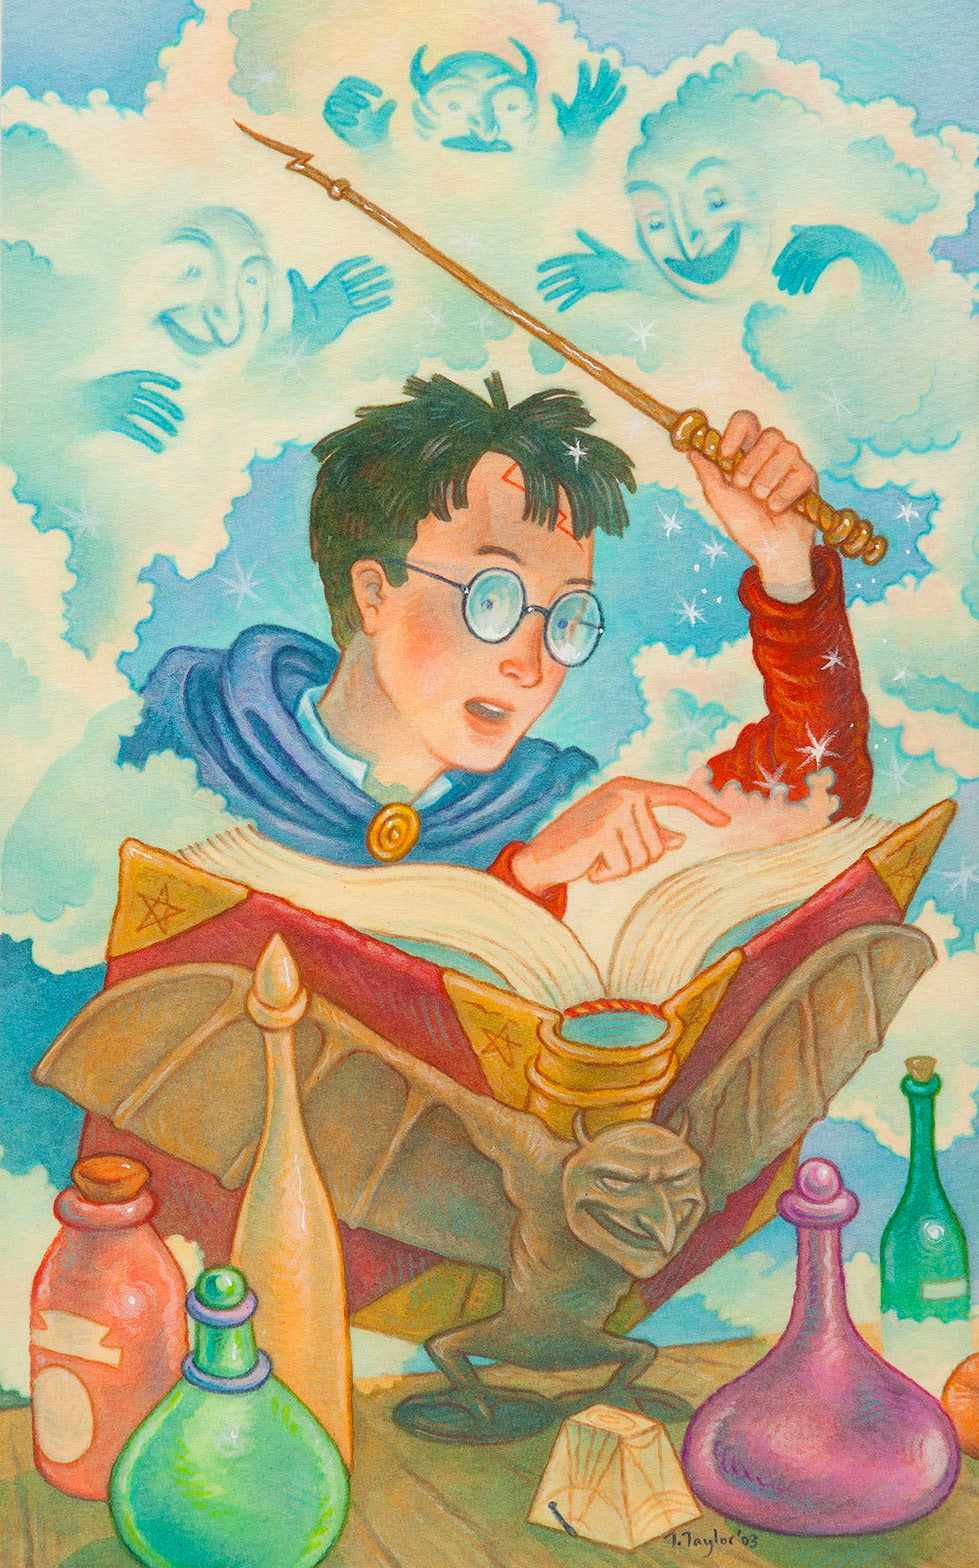 Harry with spellbook (Thomas Taylor illustration)